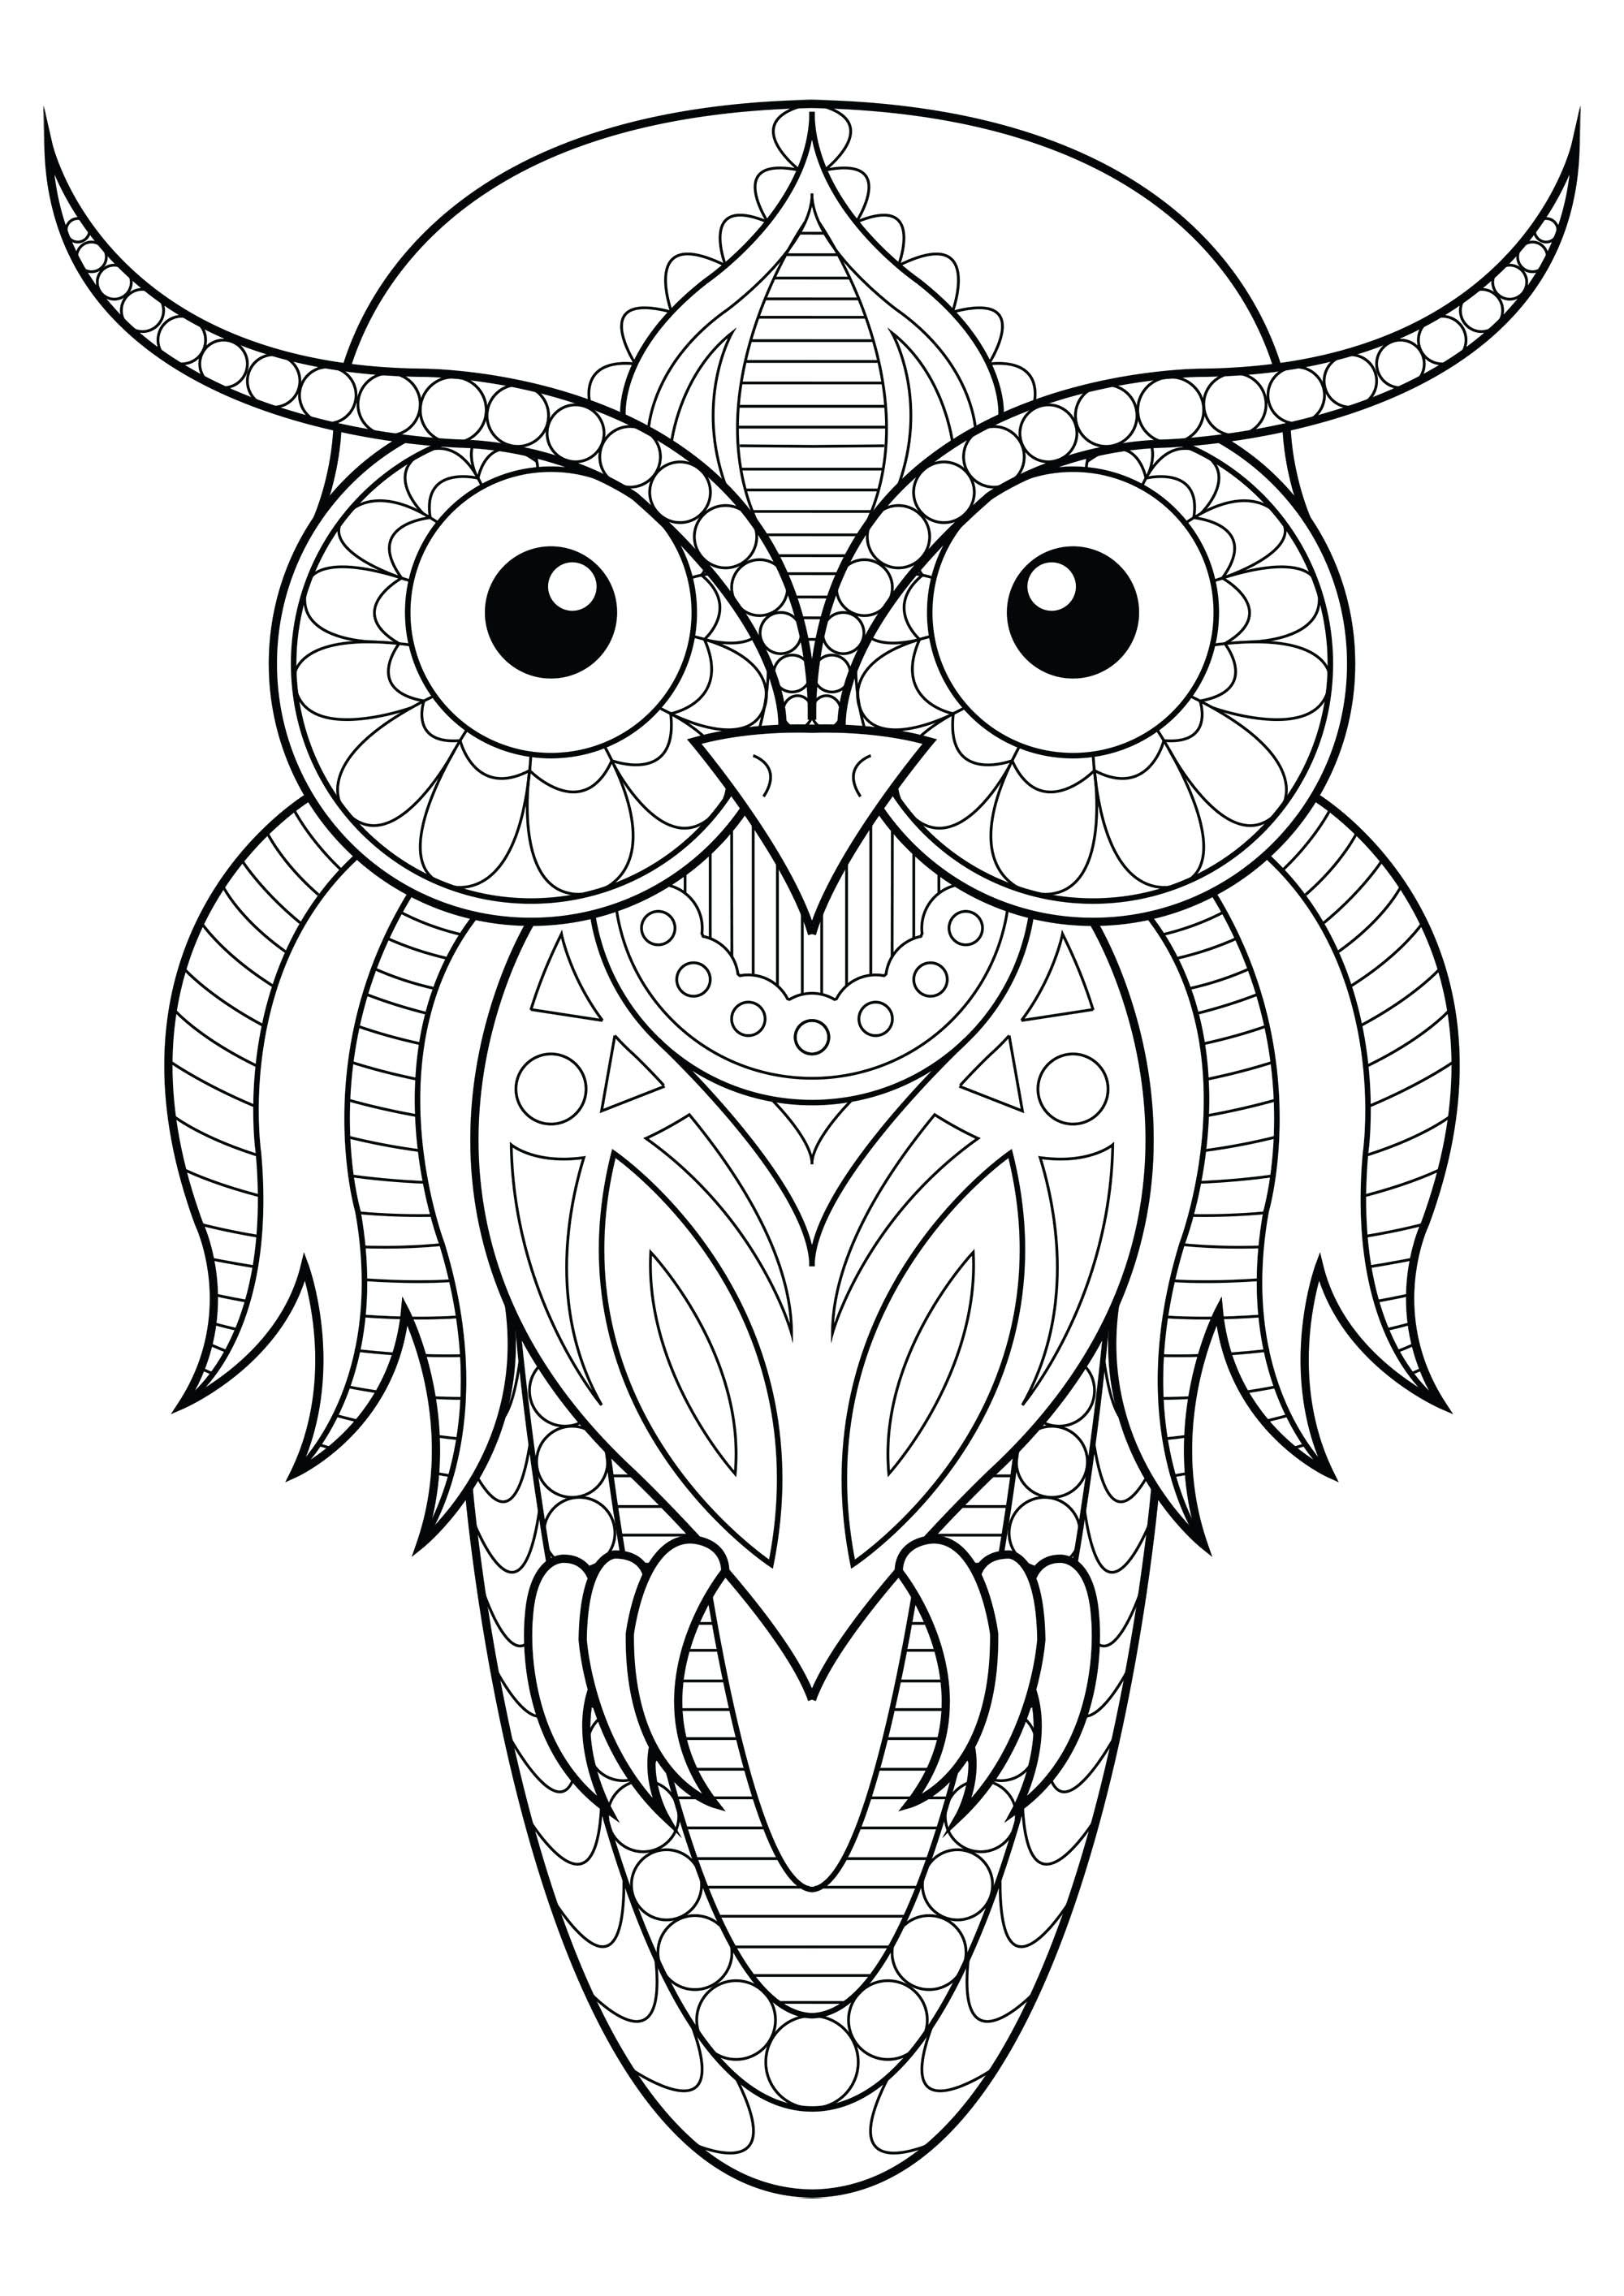 Owl Simple Patterns 1 Owls Coloring Pages For Adults Just